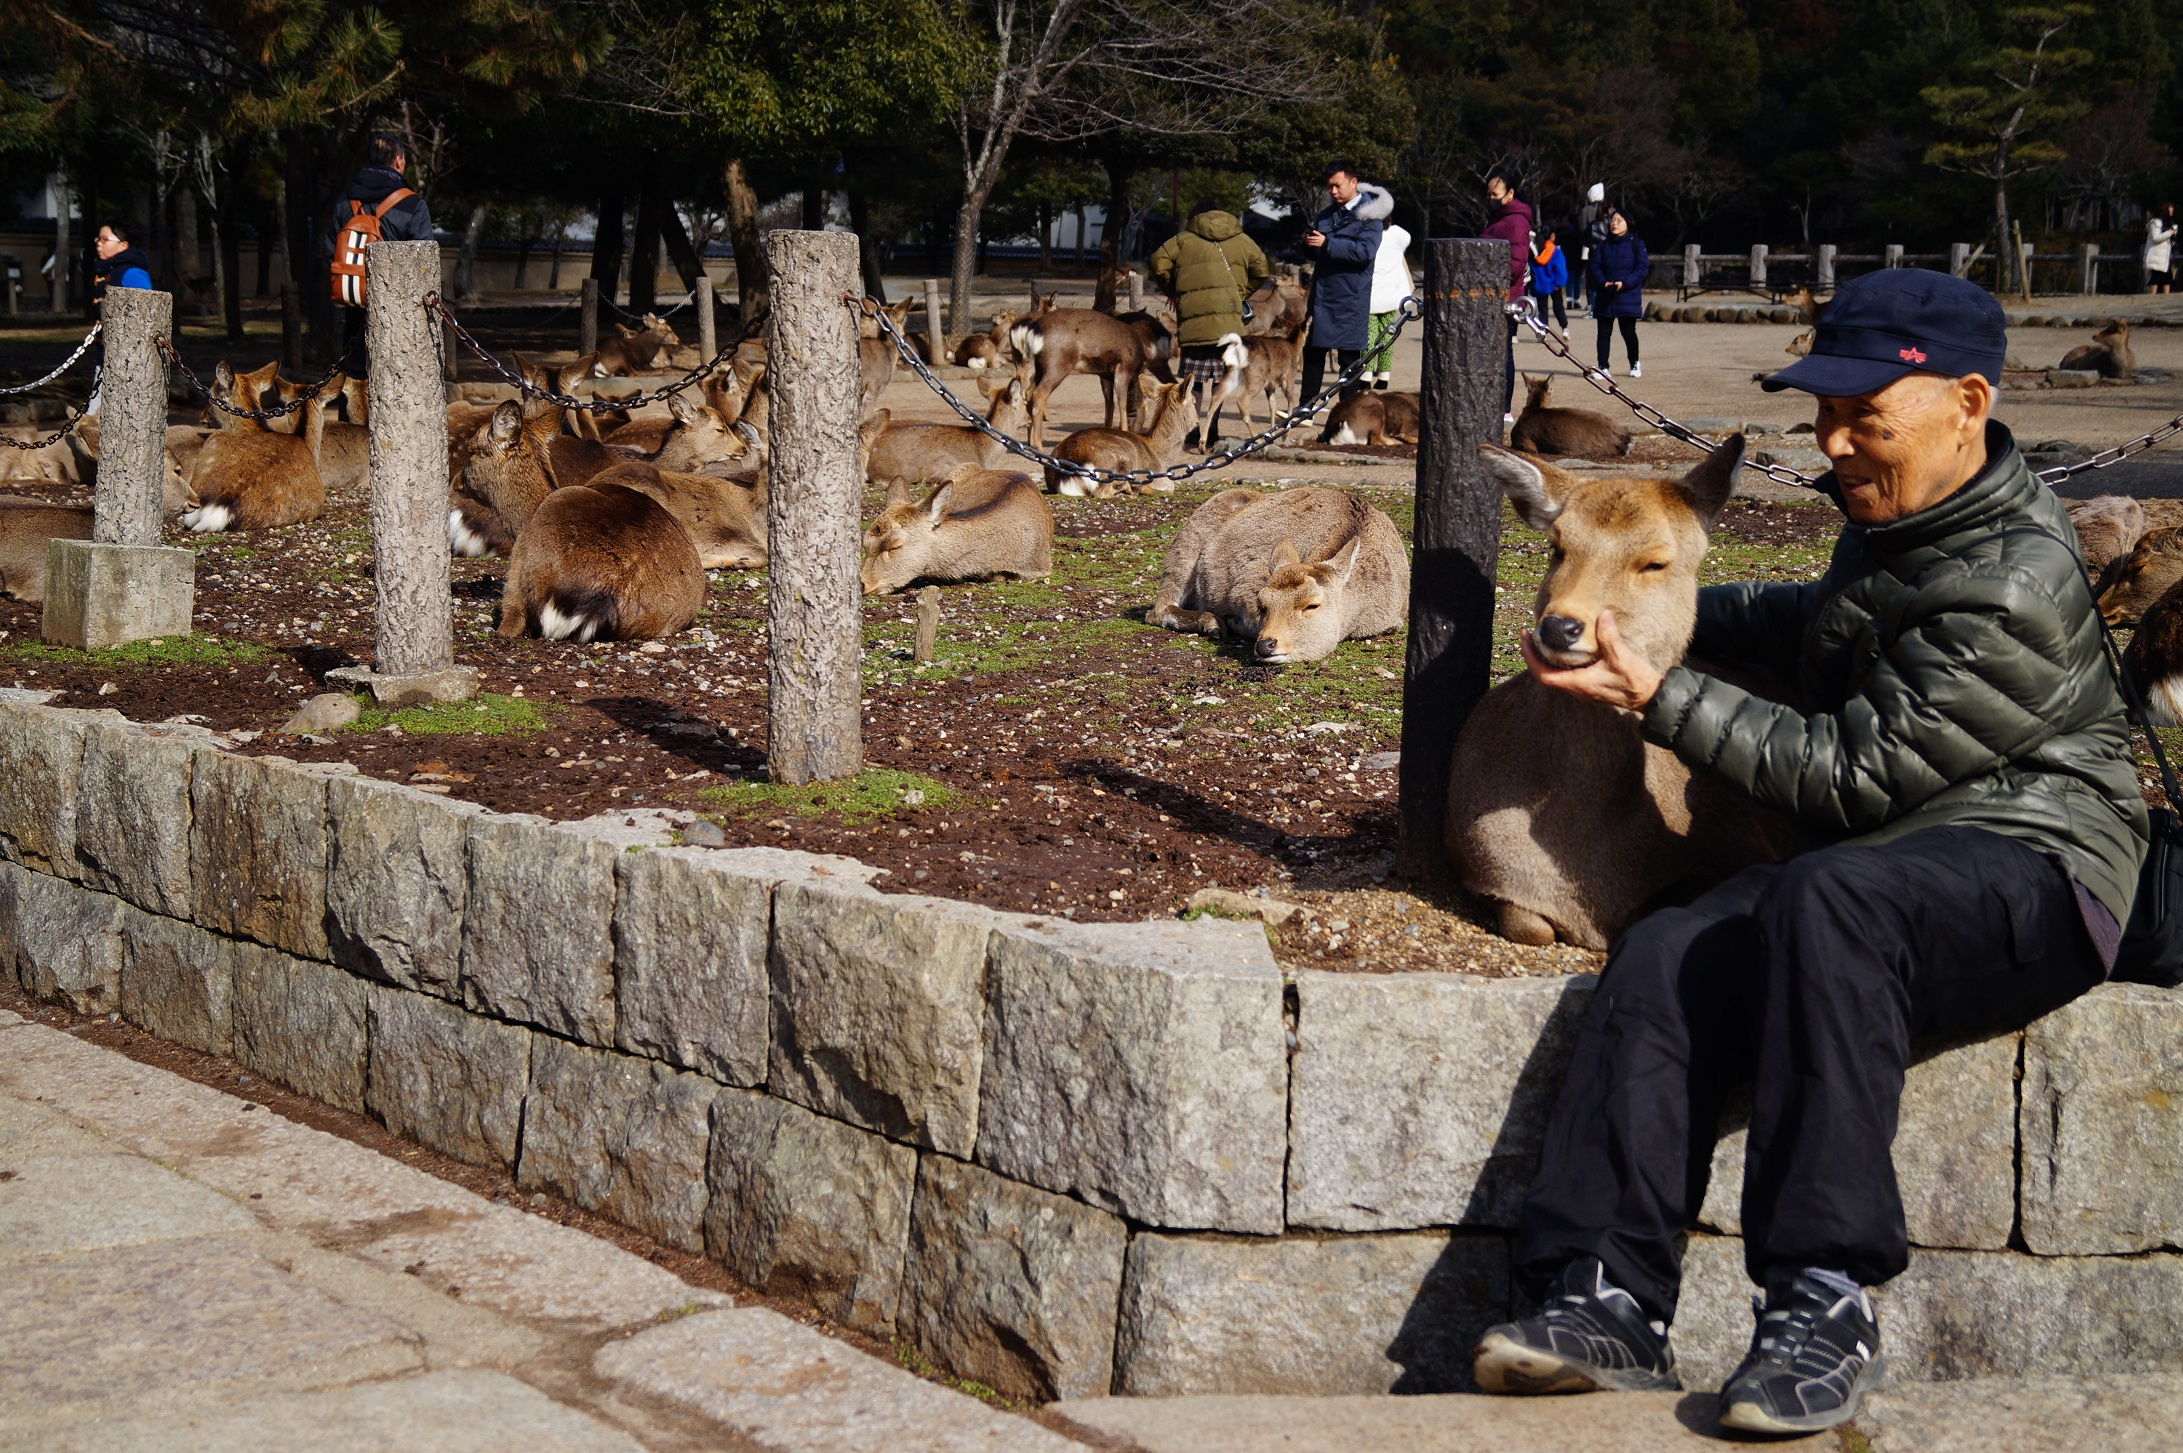 Nara La ciudad de los ciervos - Nara Park and the Sacred Deer of Japan